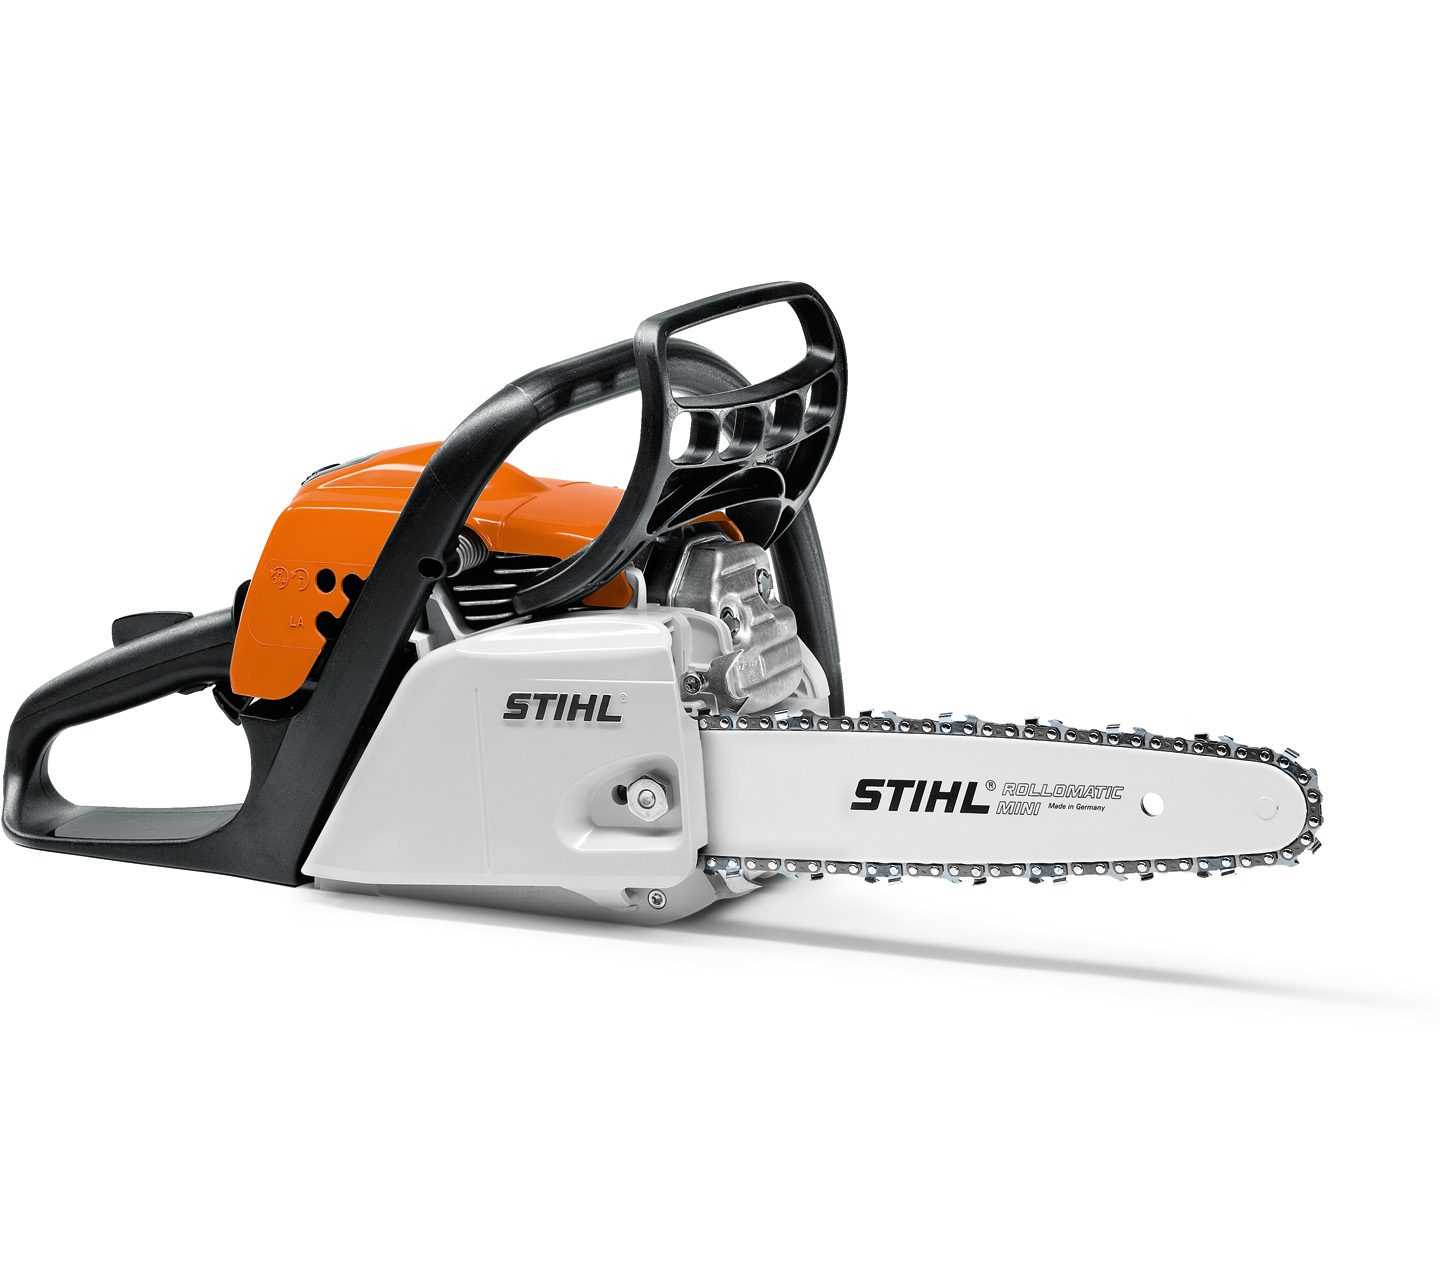 """MS 181 14"""" - 1.5 KW/2.0 HP DOMESTIC PETROL CHAINSAW"""